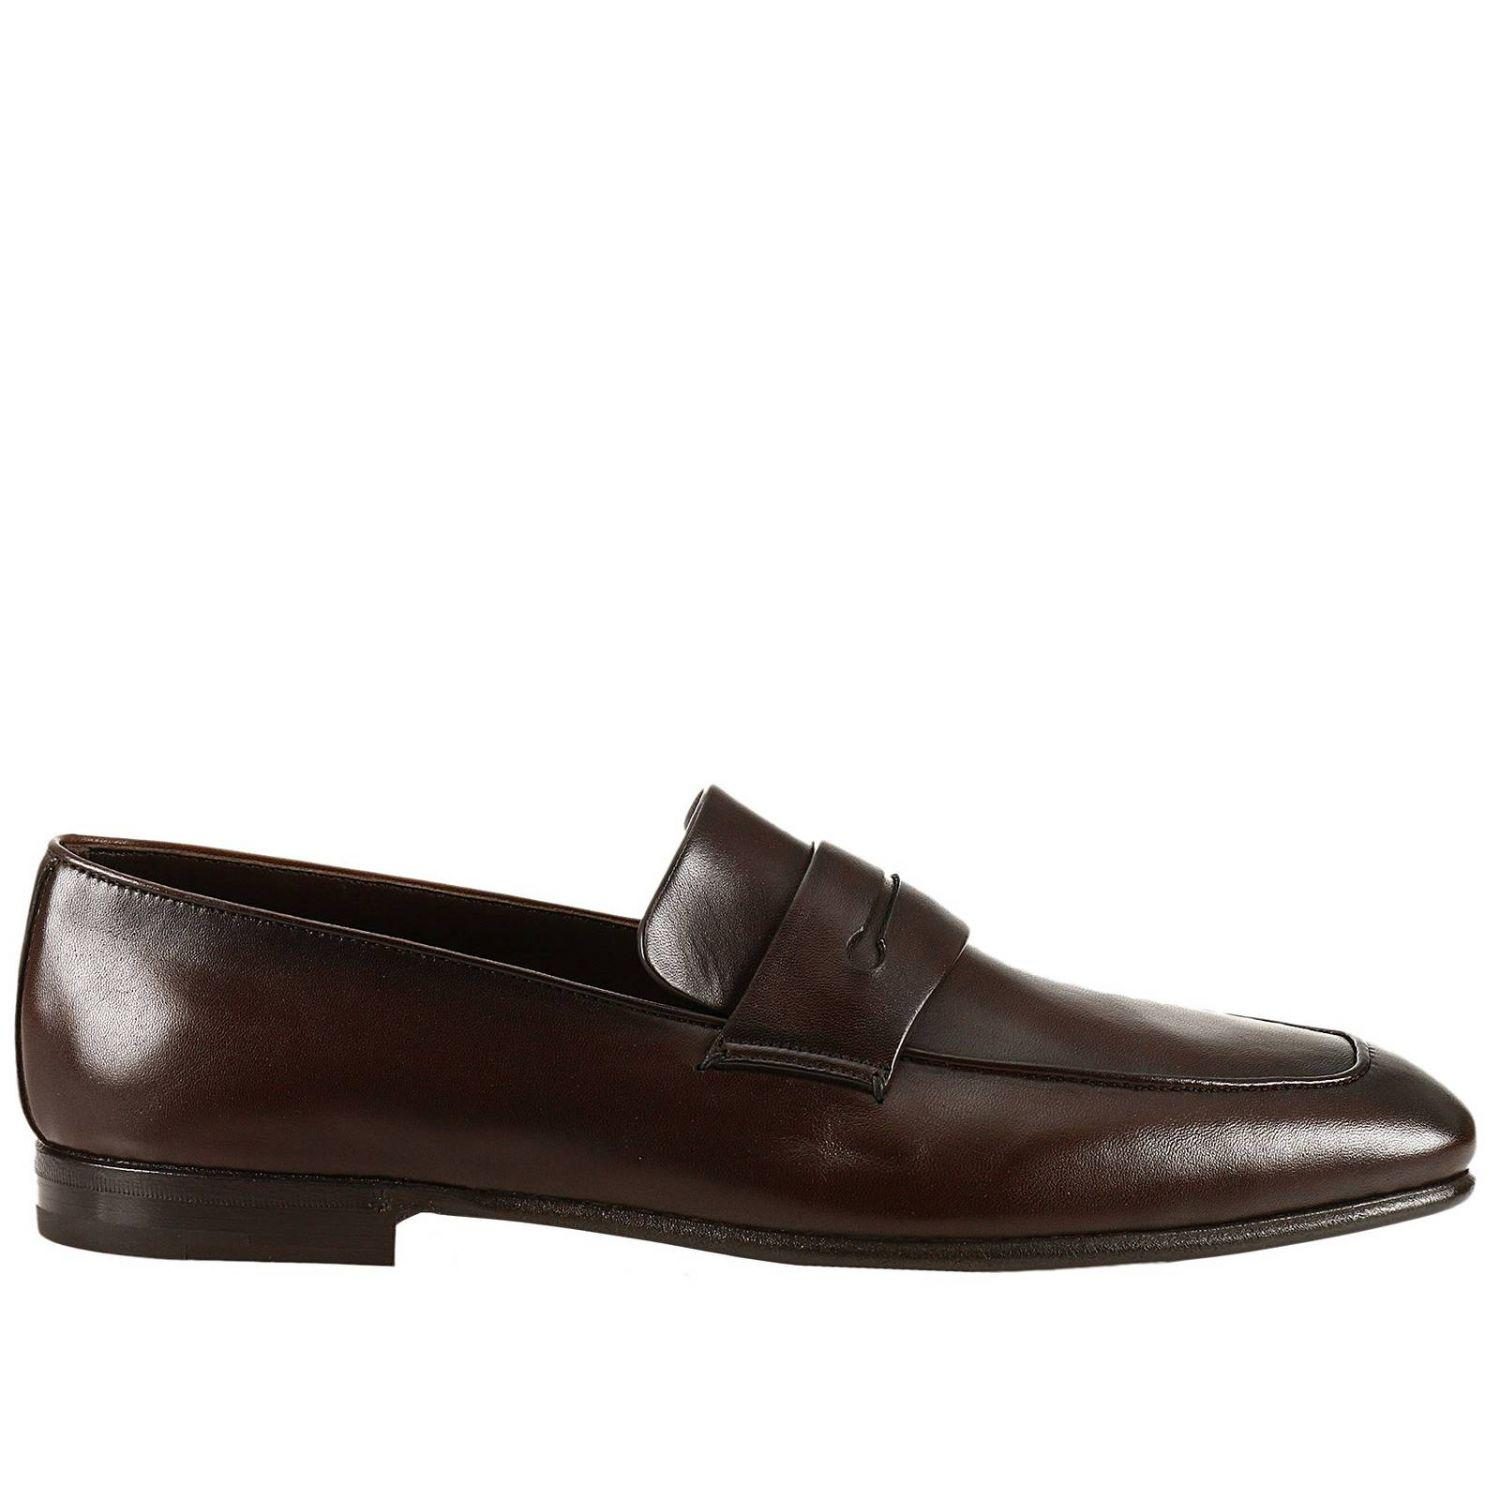 Asola Leather-trimmed Suede Penny Loafers - BlueErmenegildo Zegna